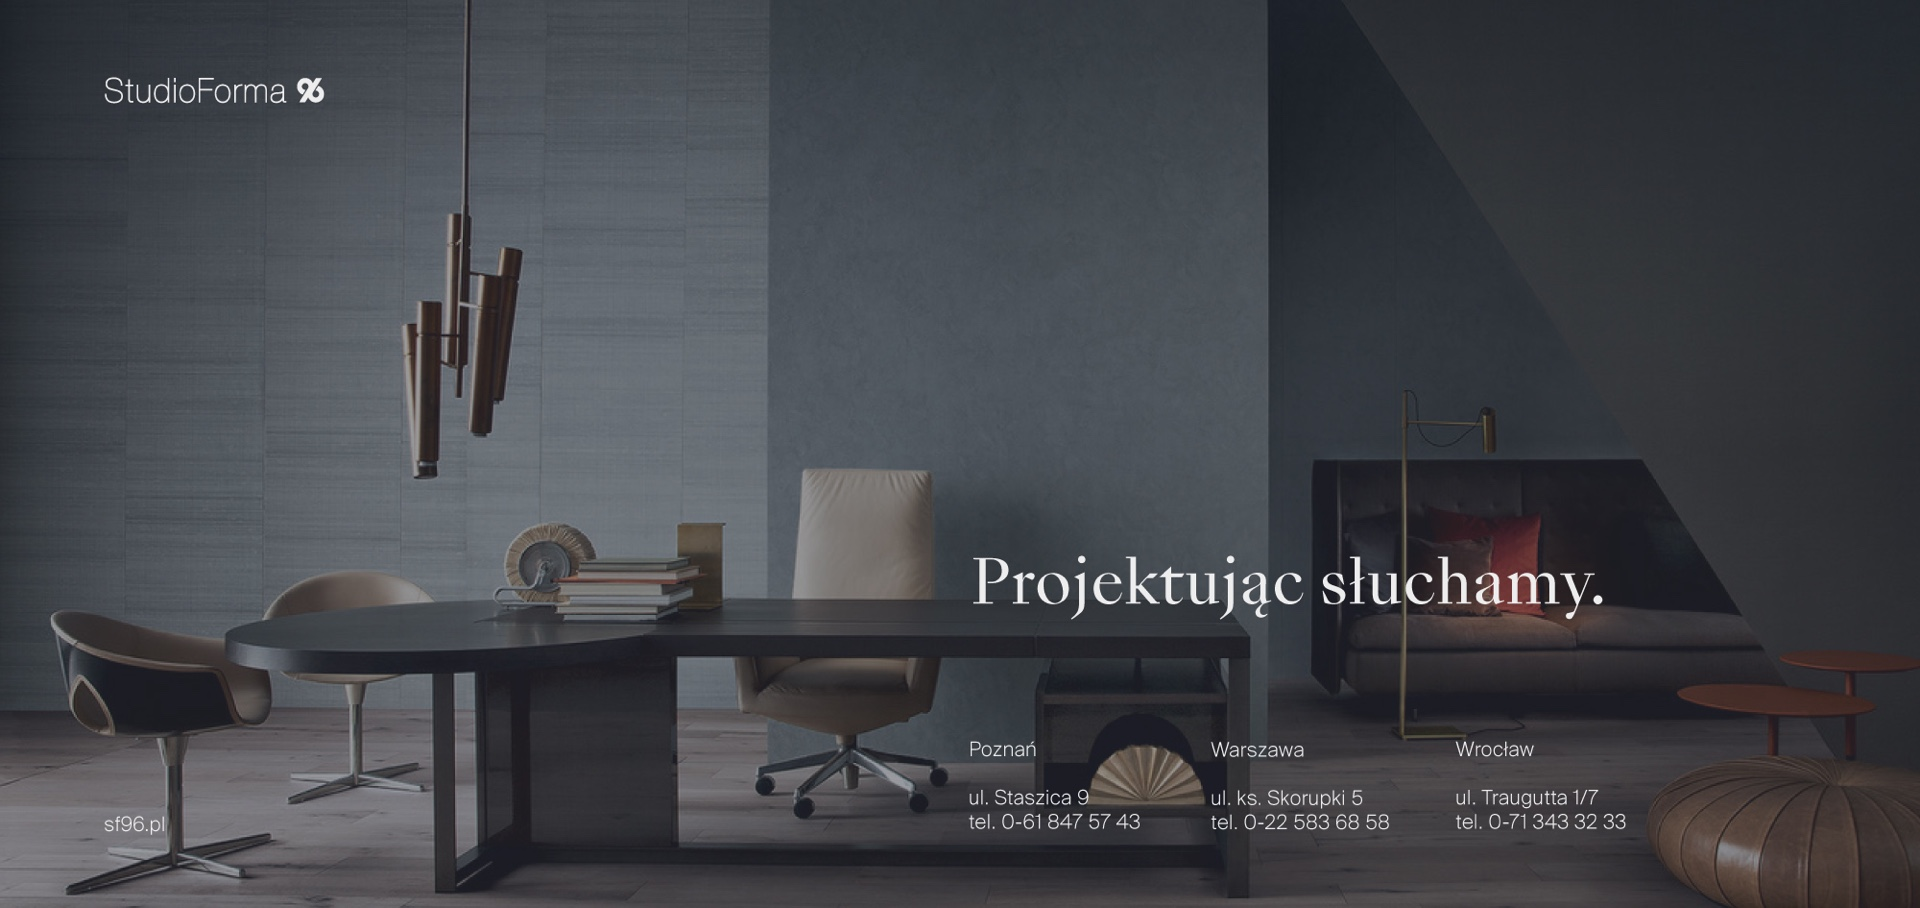 Banner design - StudioForma 96 by Uniforma